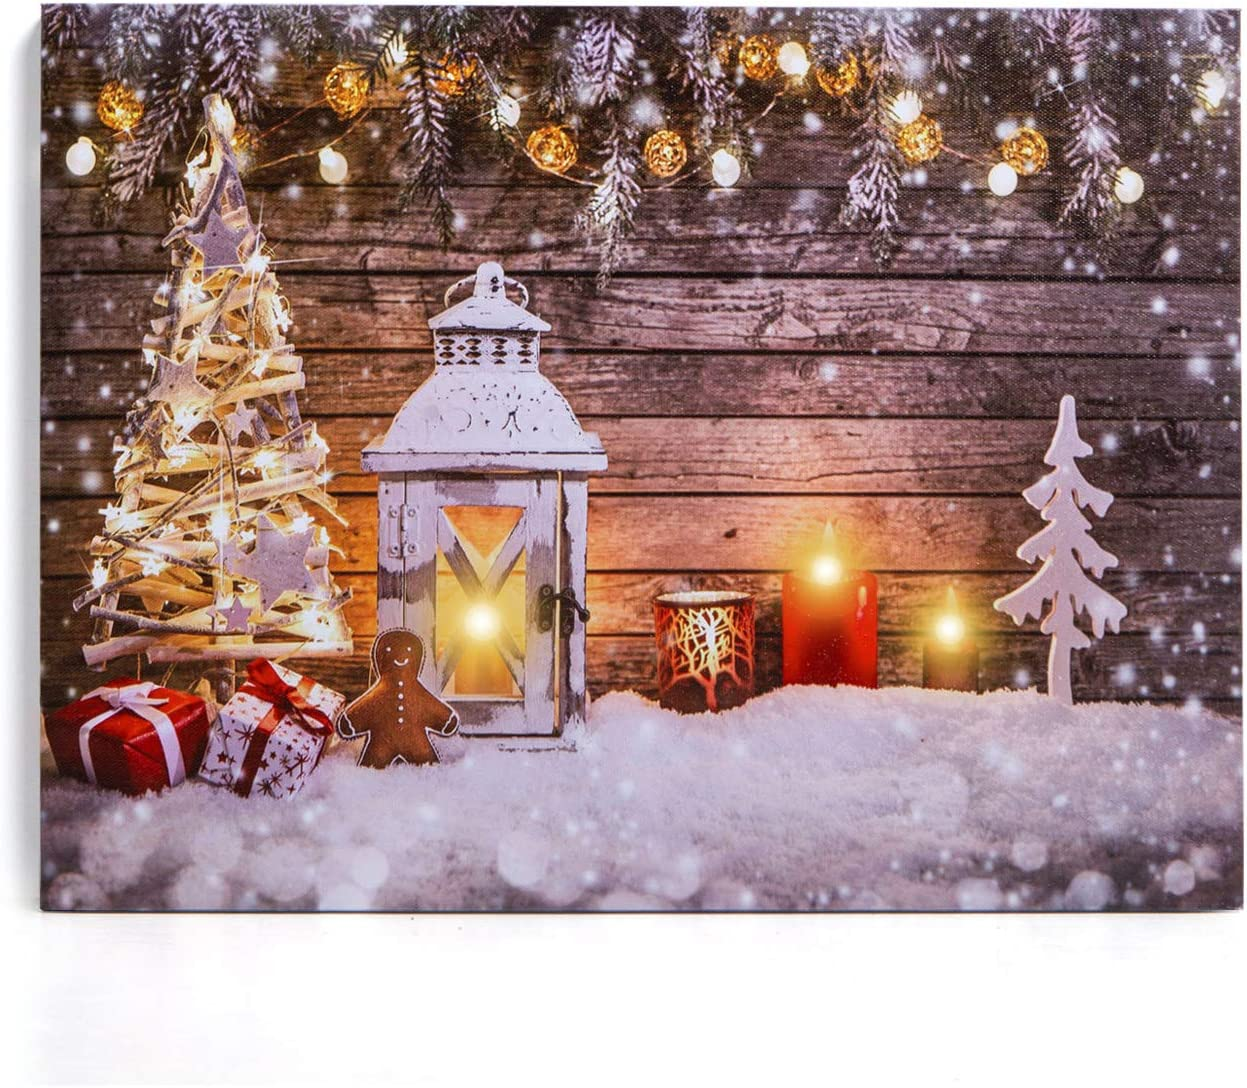 "NIKKY HOME 16"" x 12"" Decorative Christmas LED Lighted Canvas Wall Art Prints Tree and Candles Picture Winter Snow Scene for Holiday Decor"